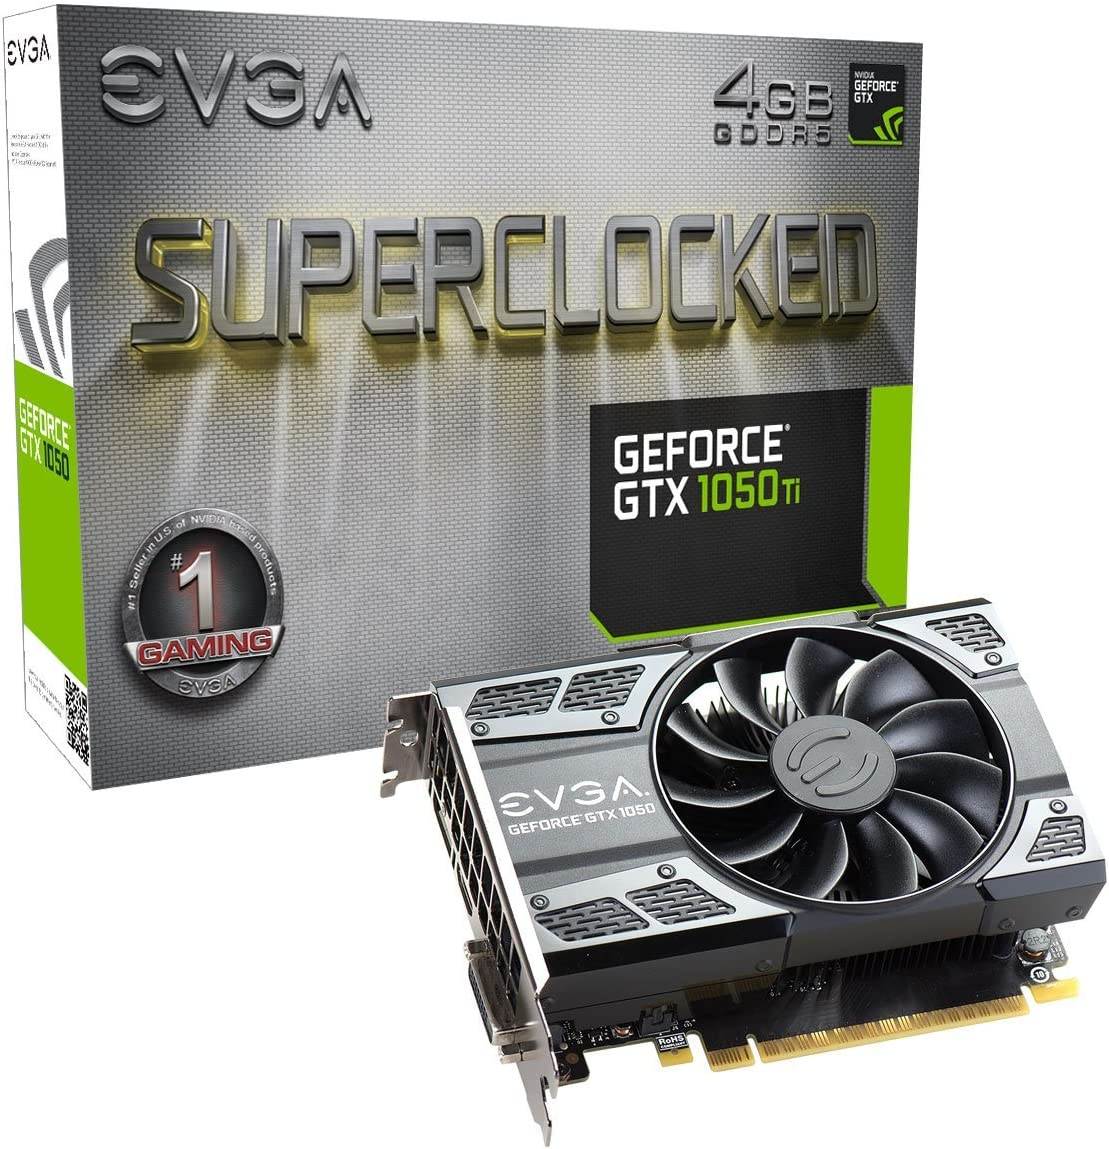 EVGA GTX 1050Ti Superclocked